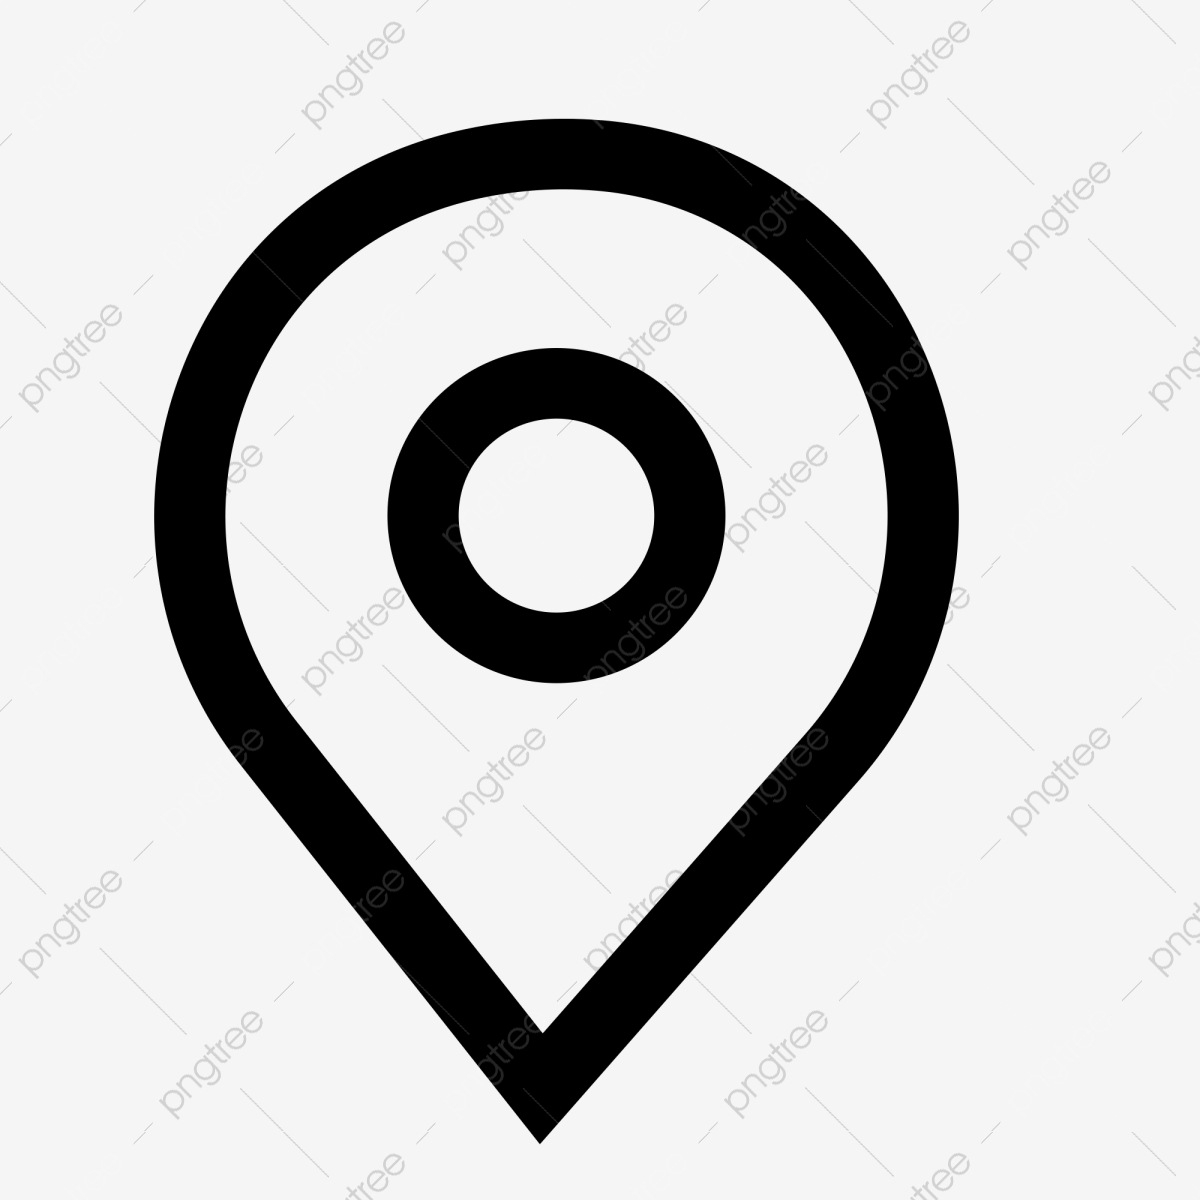 location clipart png images vector and psd files free download on pngtree https pngtree com freepng navigation icon 4555586 html